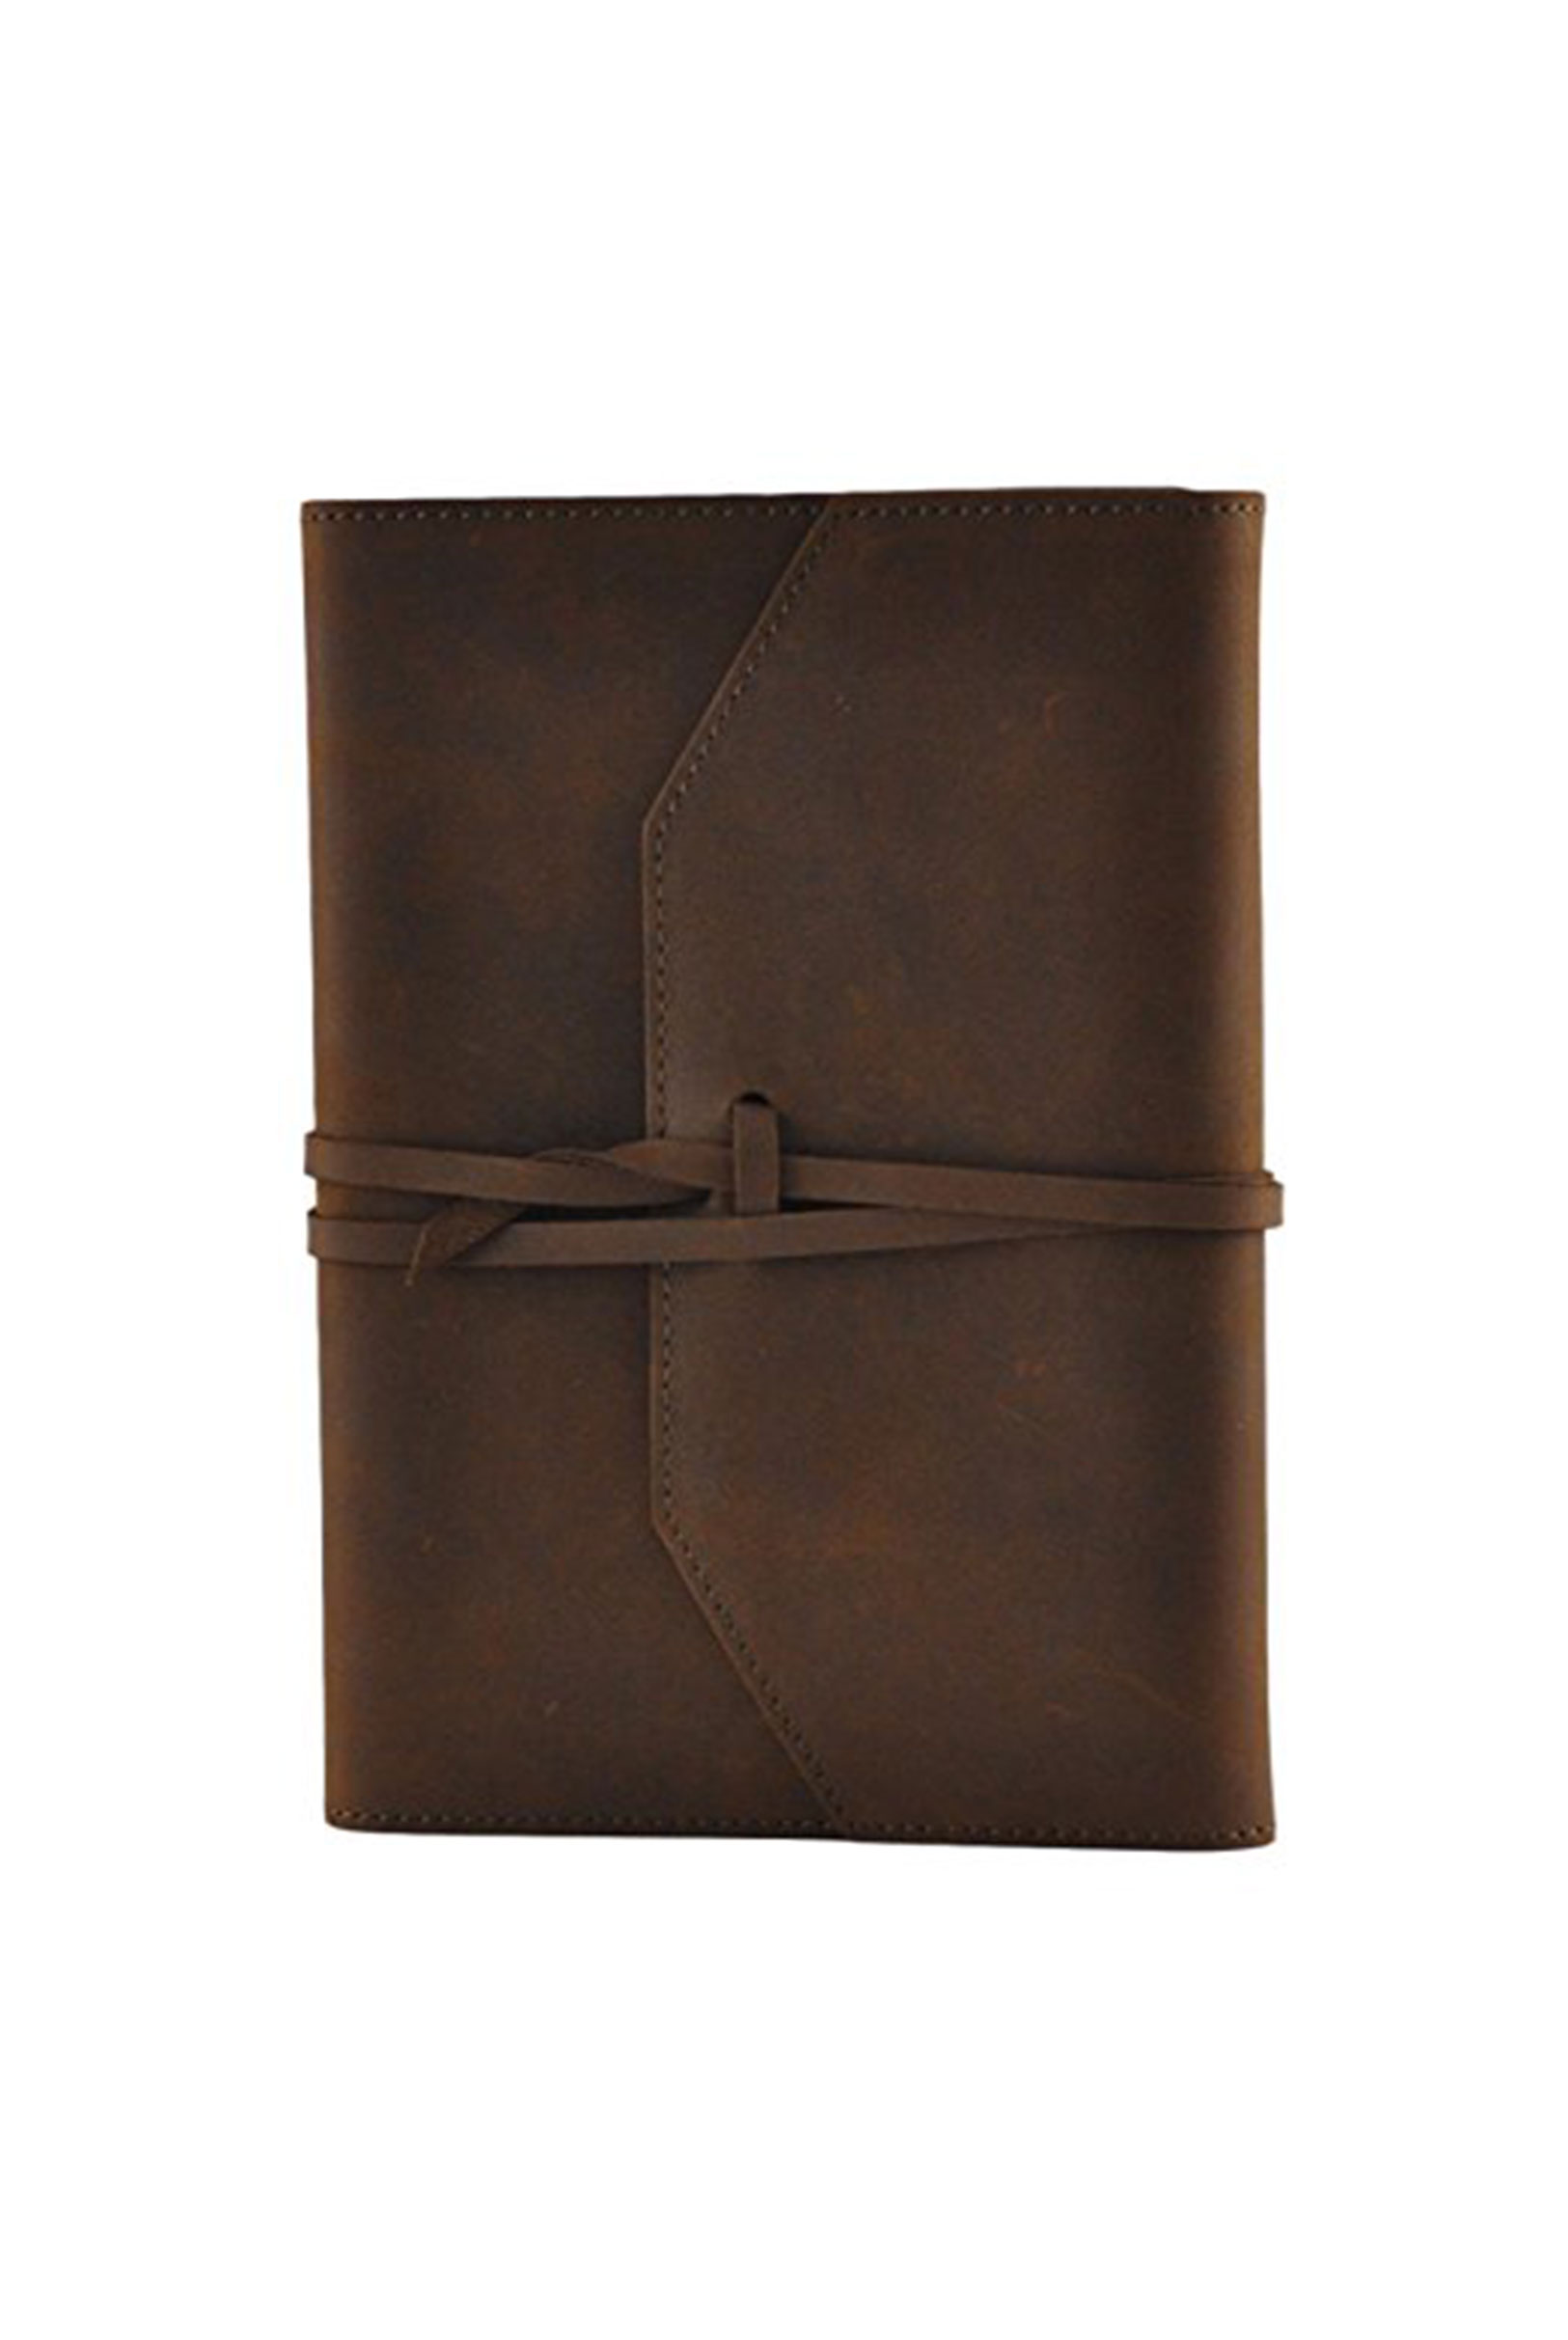 LEATHER-JOURNAL.jpg